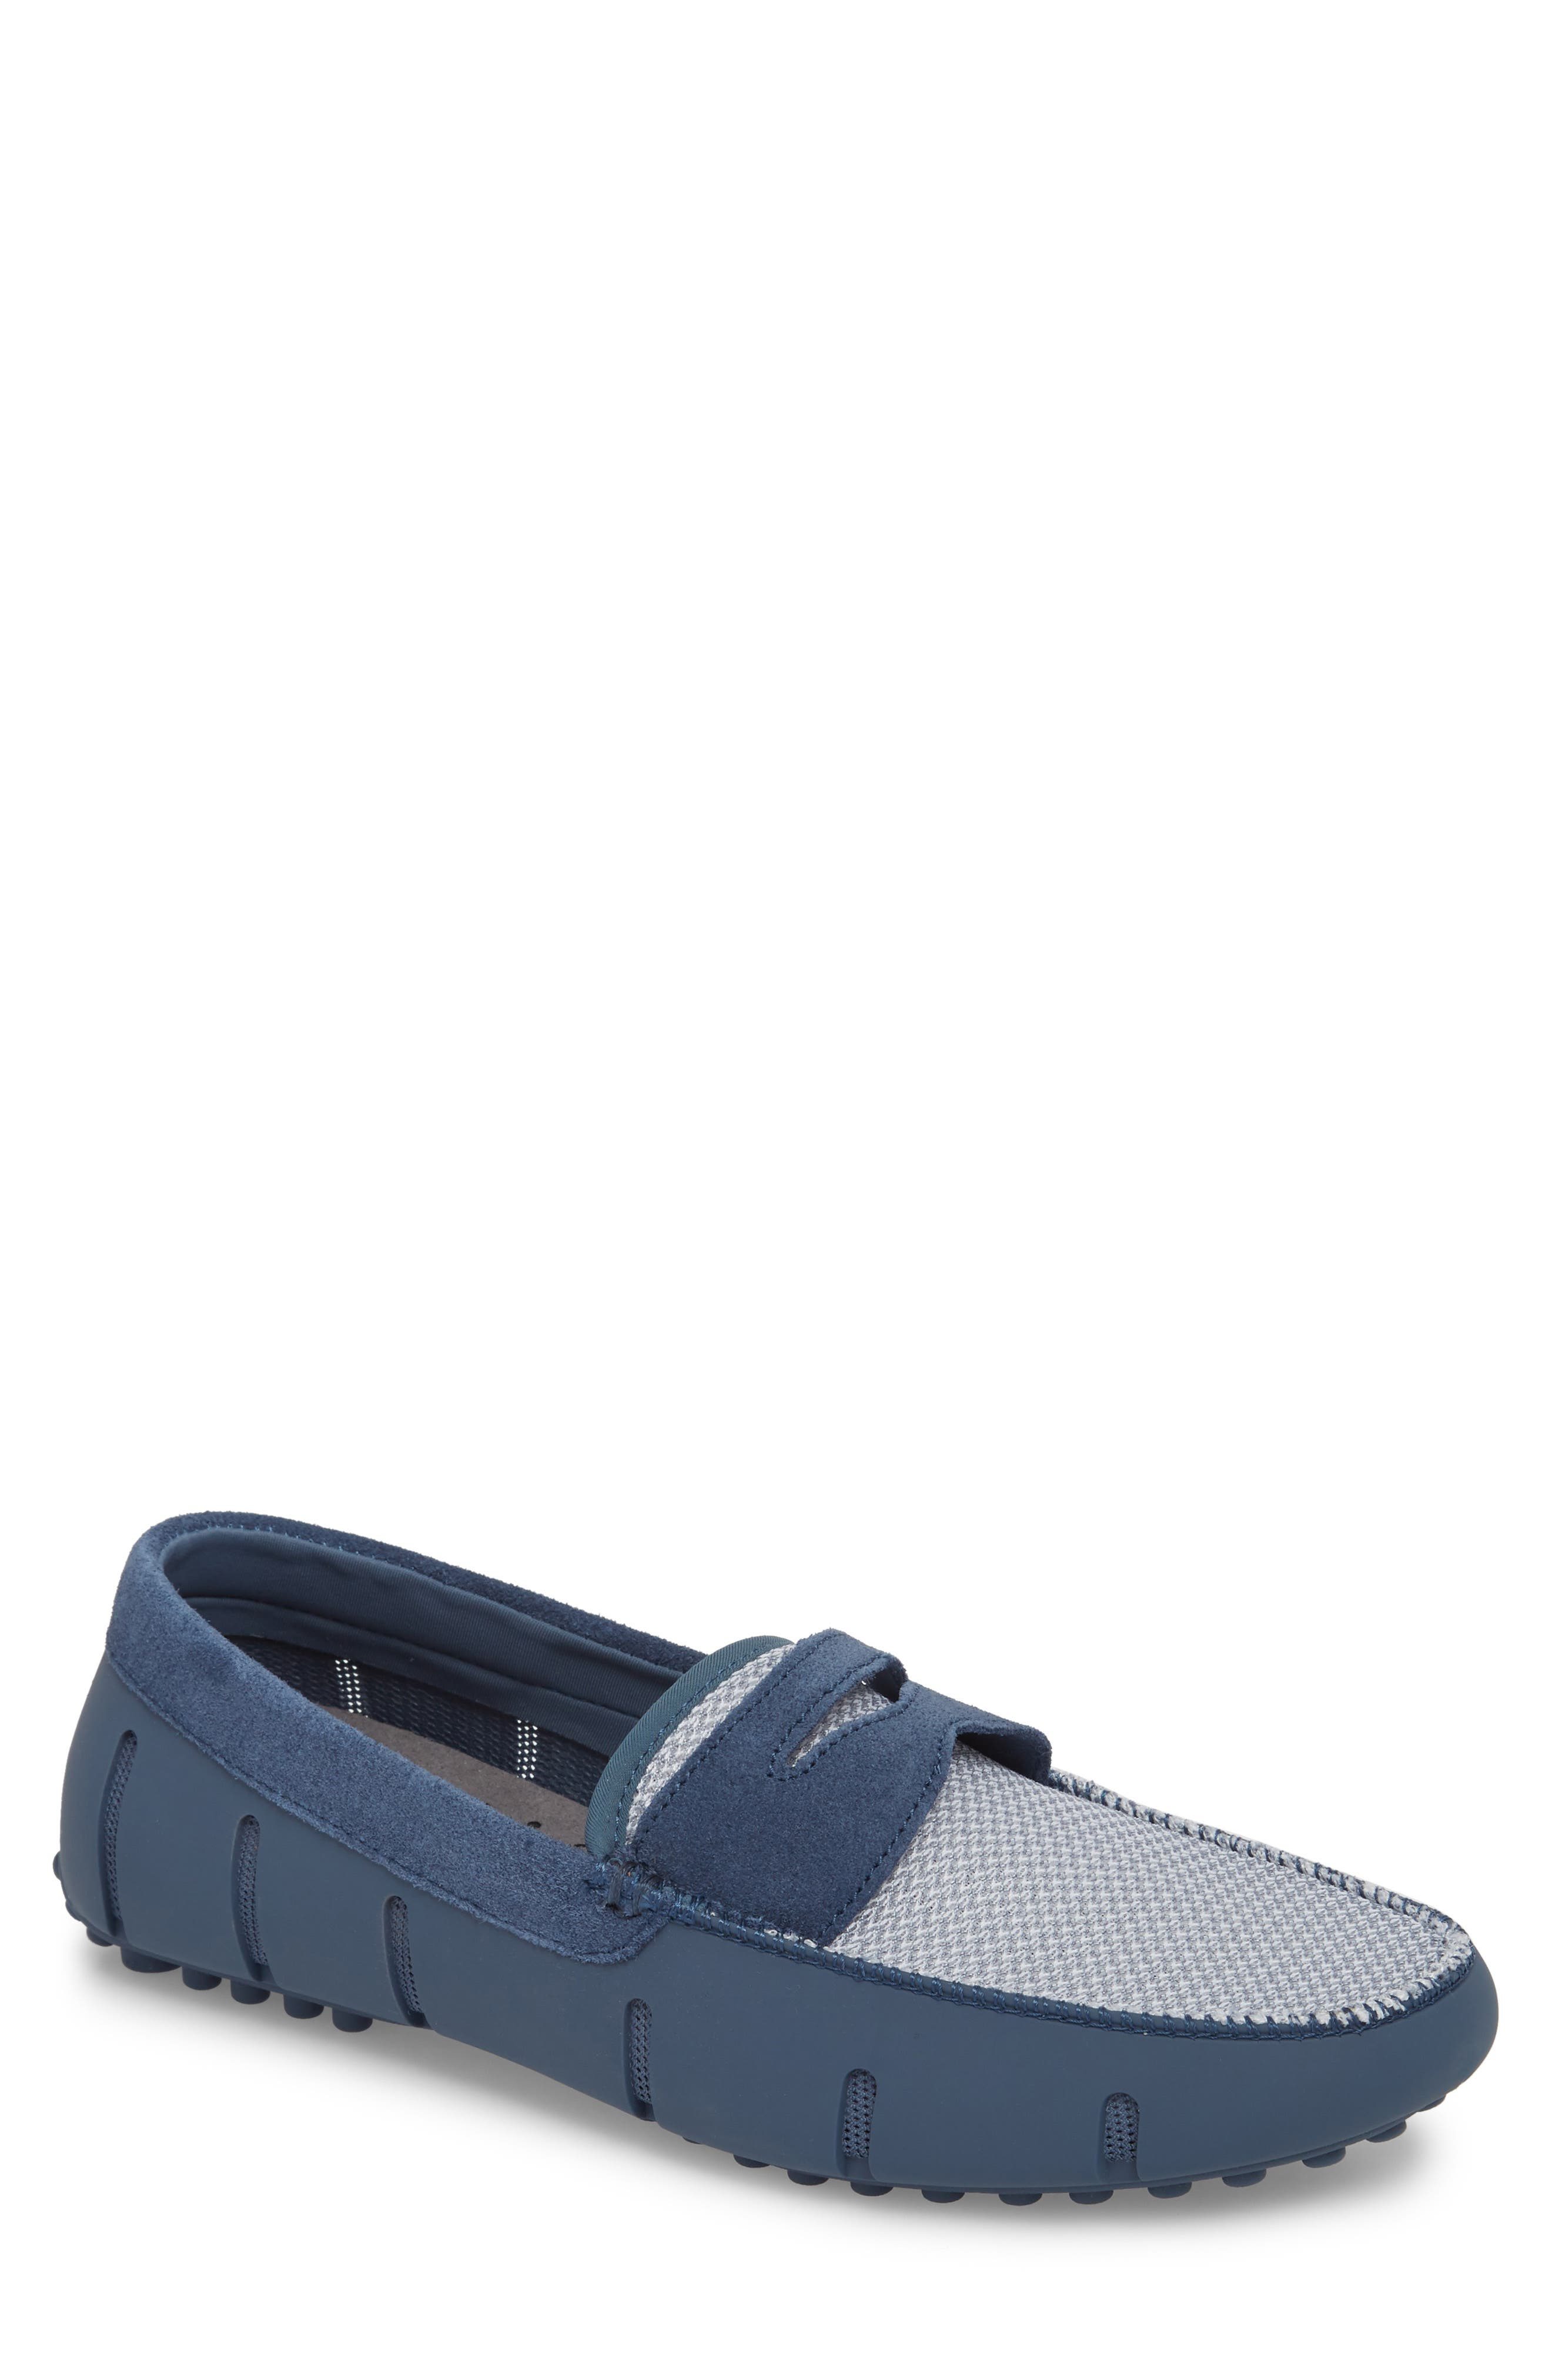 Driving Shoe,                         Main,                         color, Slate/ White Fabric